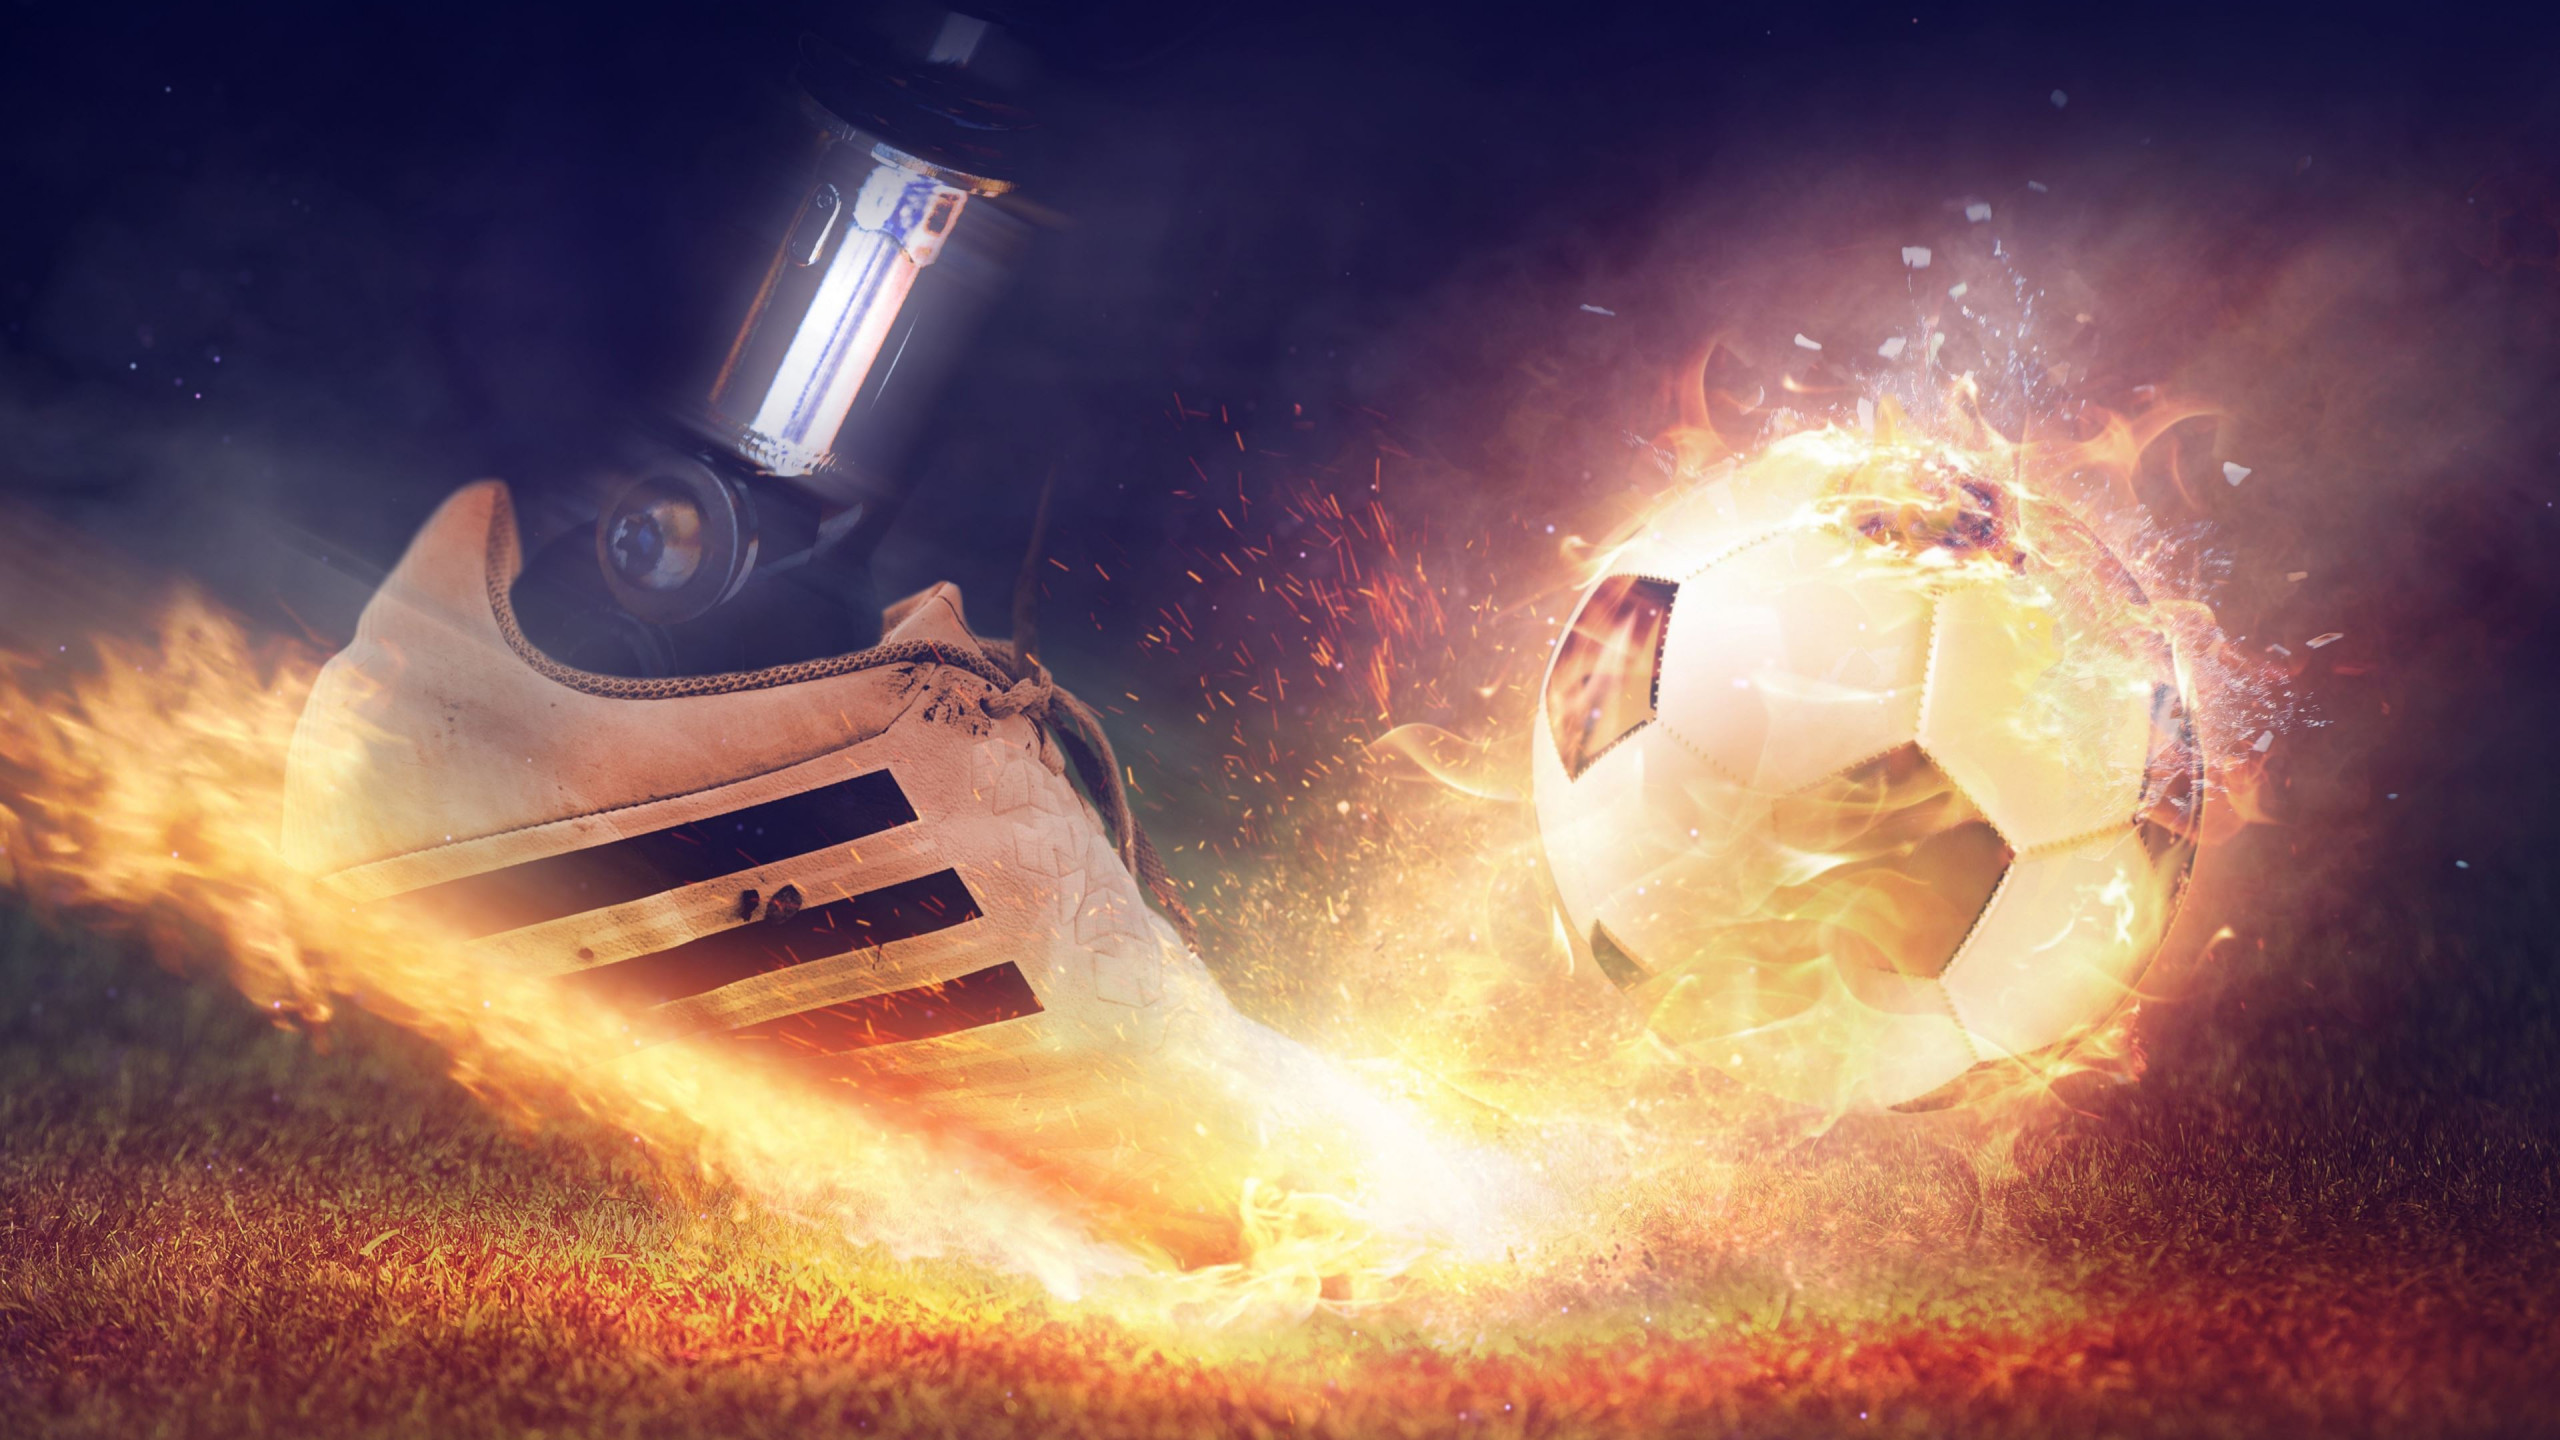 Football is on fire wallpaper 2560x1440